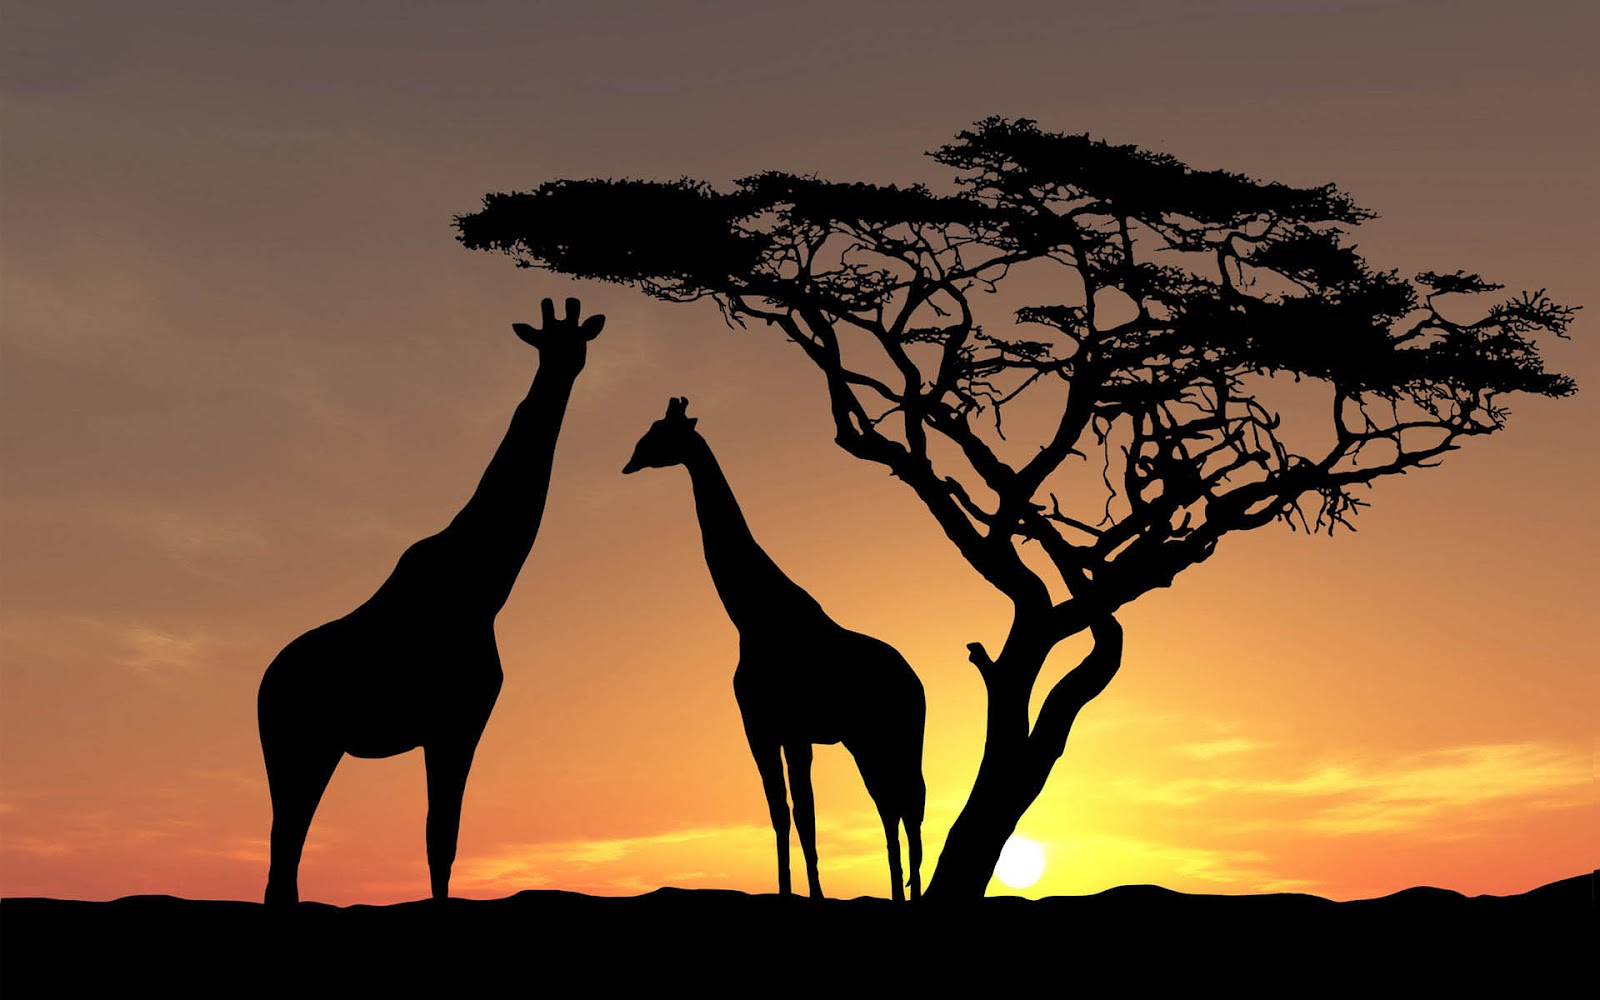 http://1.bp.blogspot.com/-1JVwZt8Tslc/UCe99FQ3uVI/AAAAAAAAAZ0/zwYkWCbk04M/s1600/hd-giraffes-wallpaper-with-giraffes-at-sundown-wallpapers-backgrounds.jpg